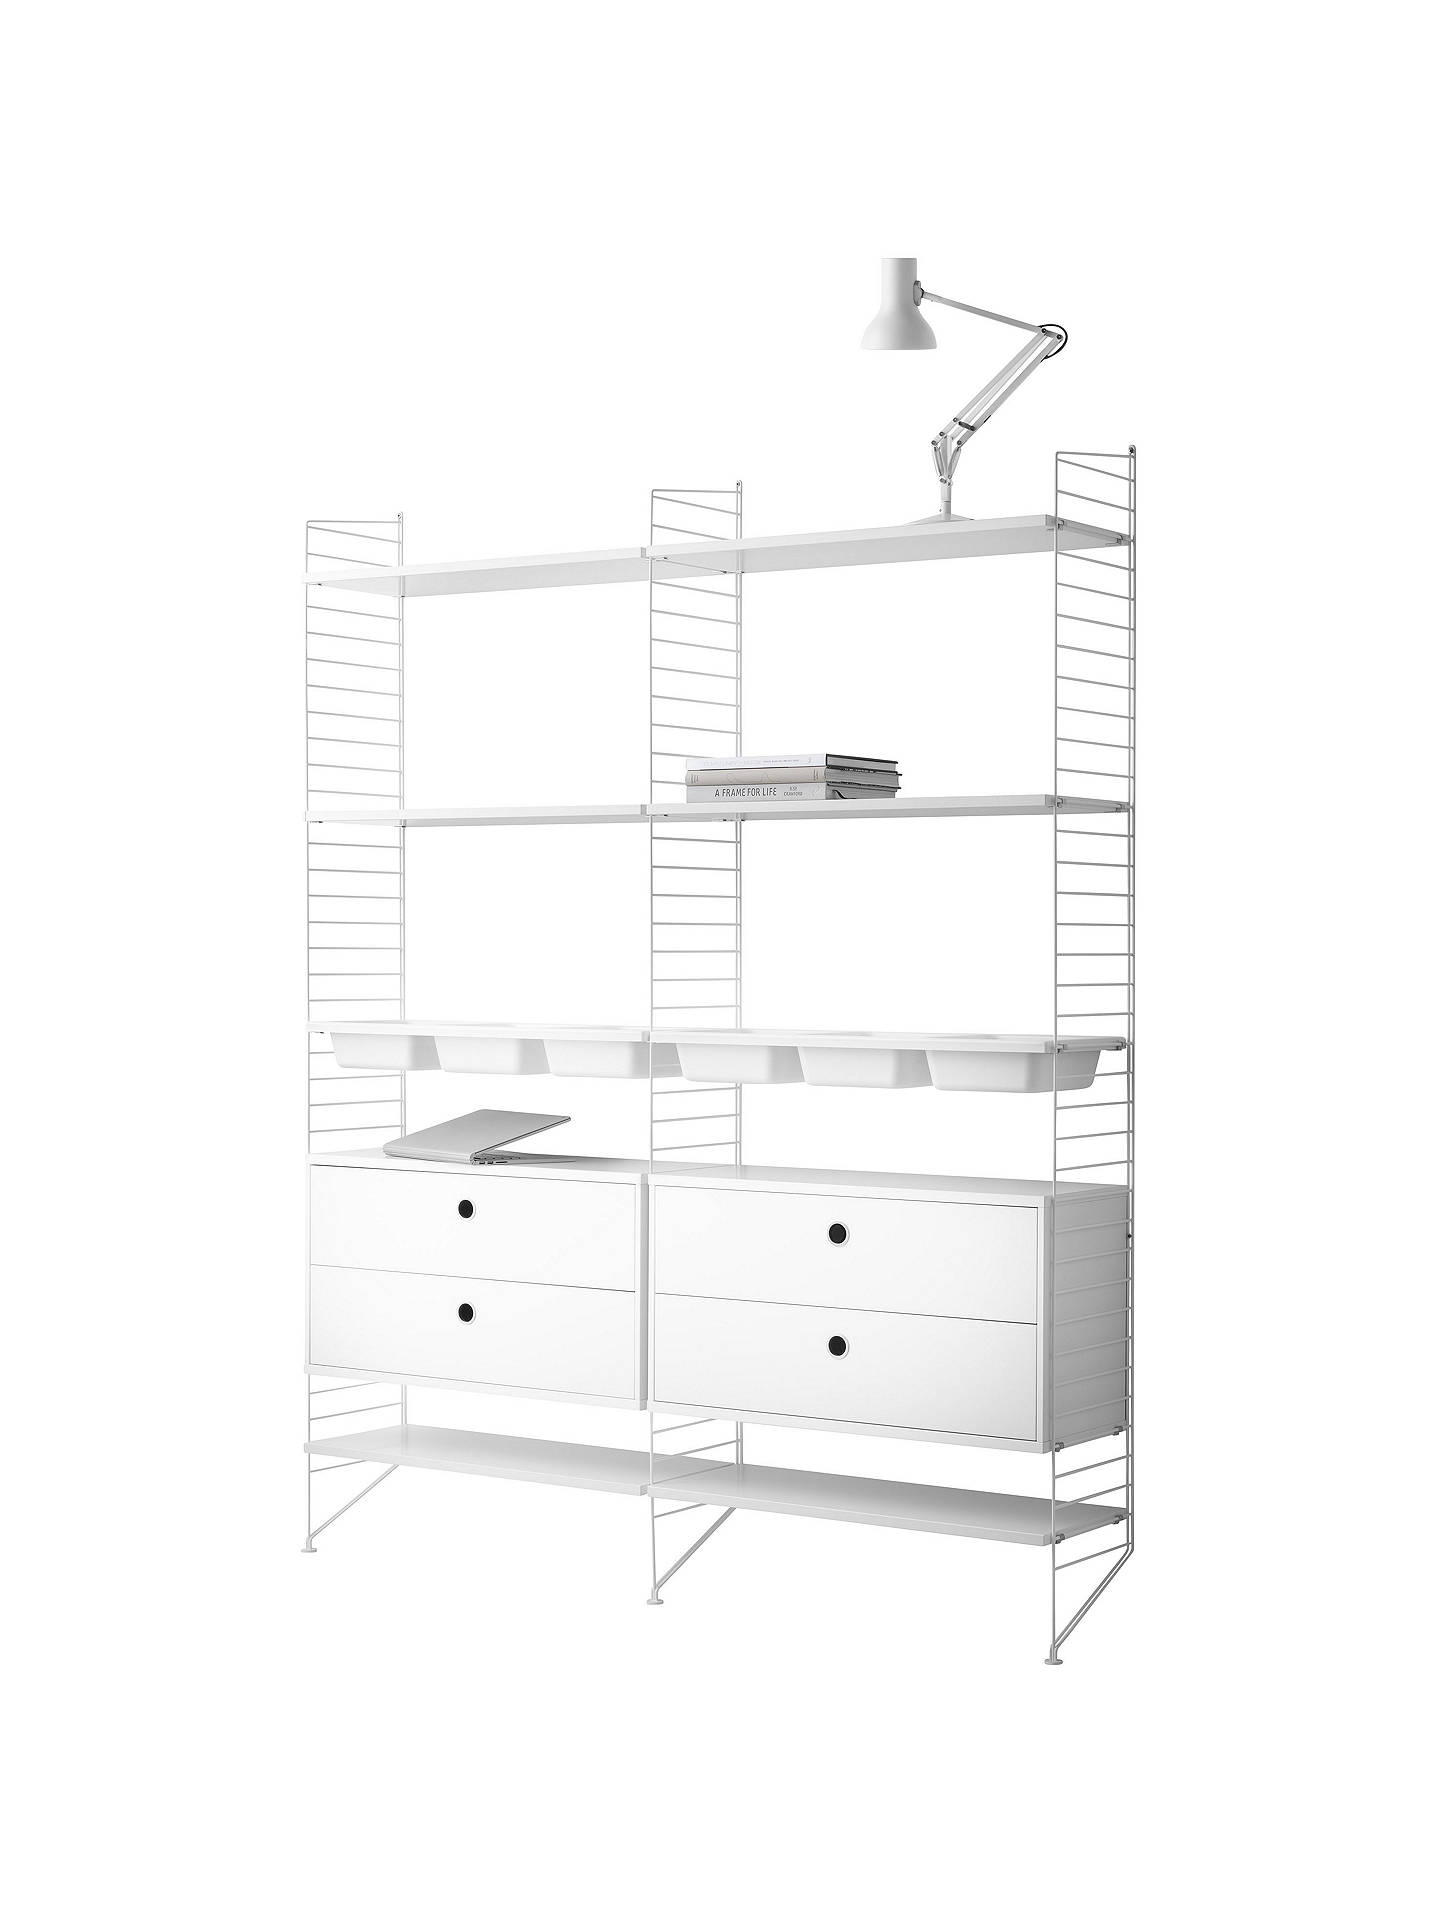 Buystring Shelving Unit with 2 Drawer Chest, 6 Shelves, 3 Bowl Shelf and Wall Fastened Side Racks, White Online at johnlewis.com